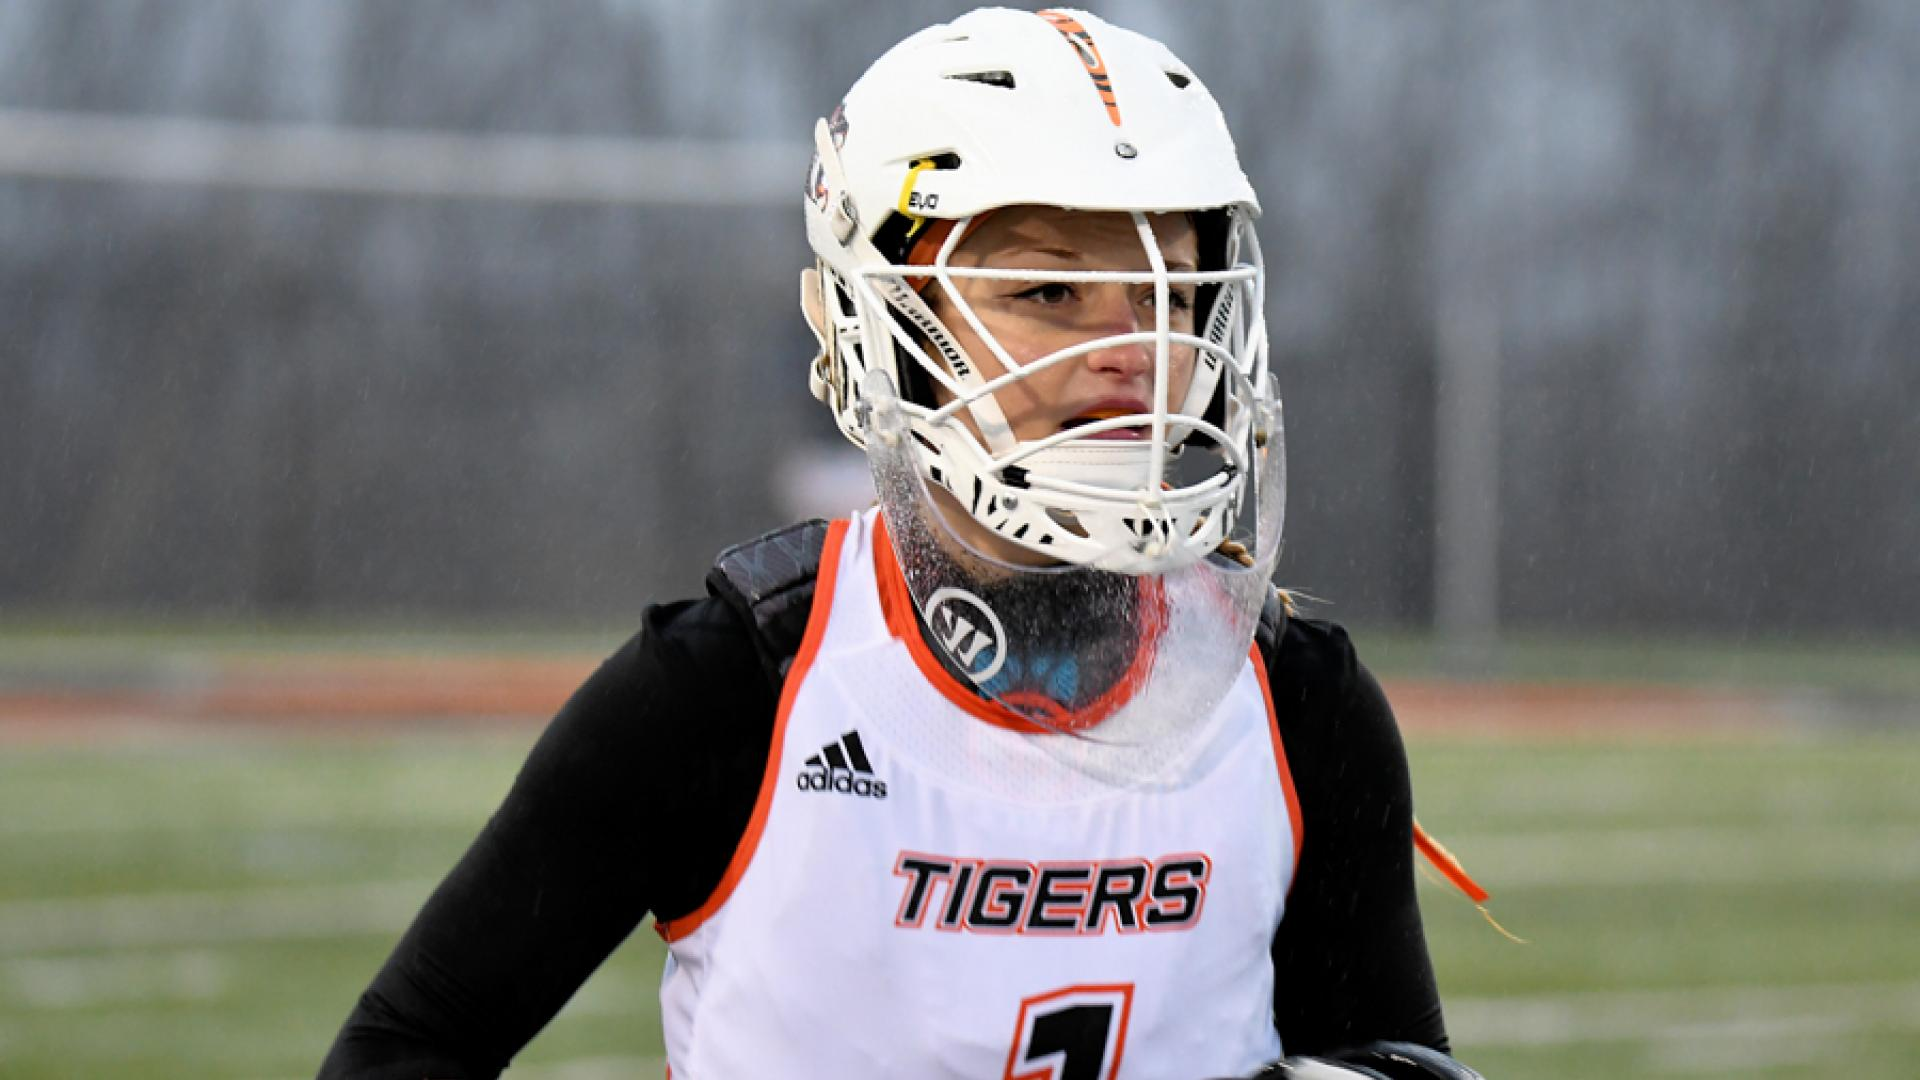 Georgetown College Women's Lacrosse